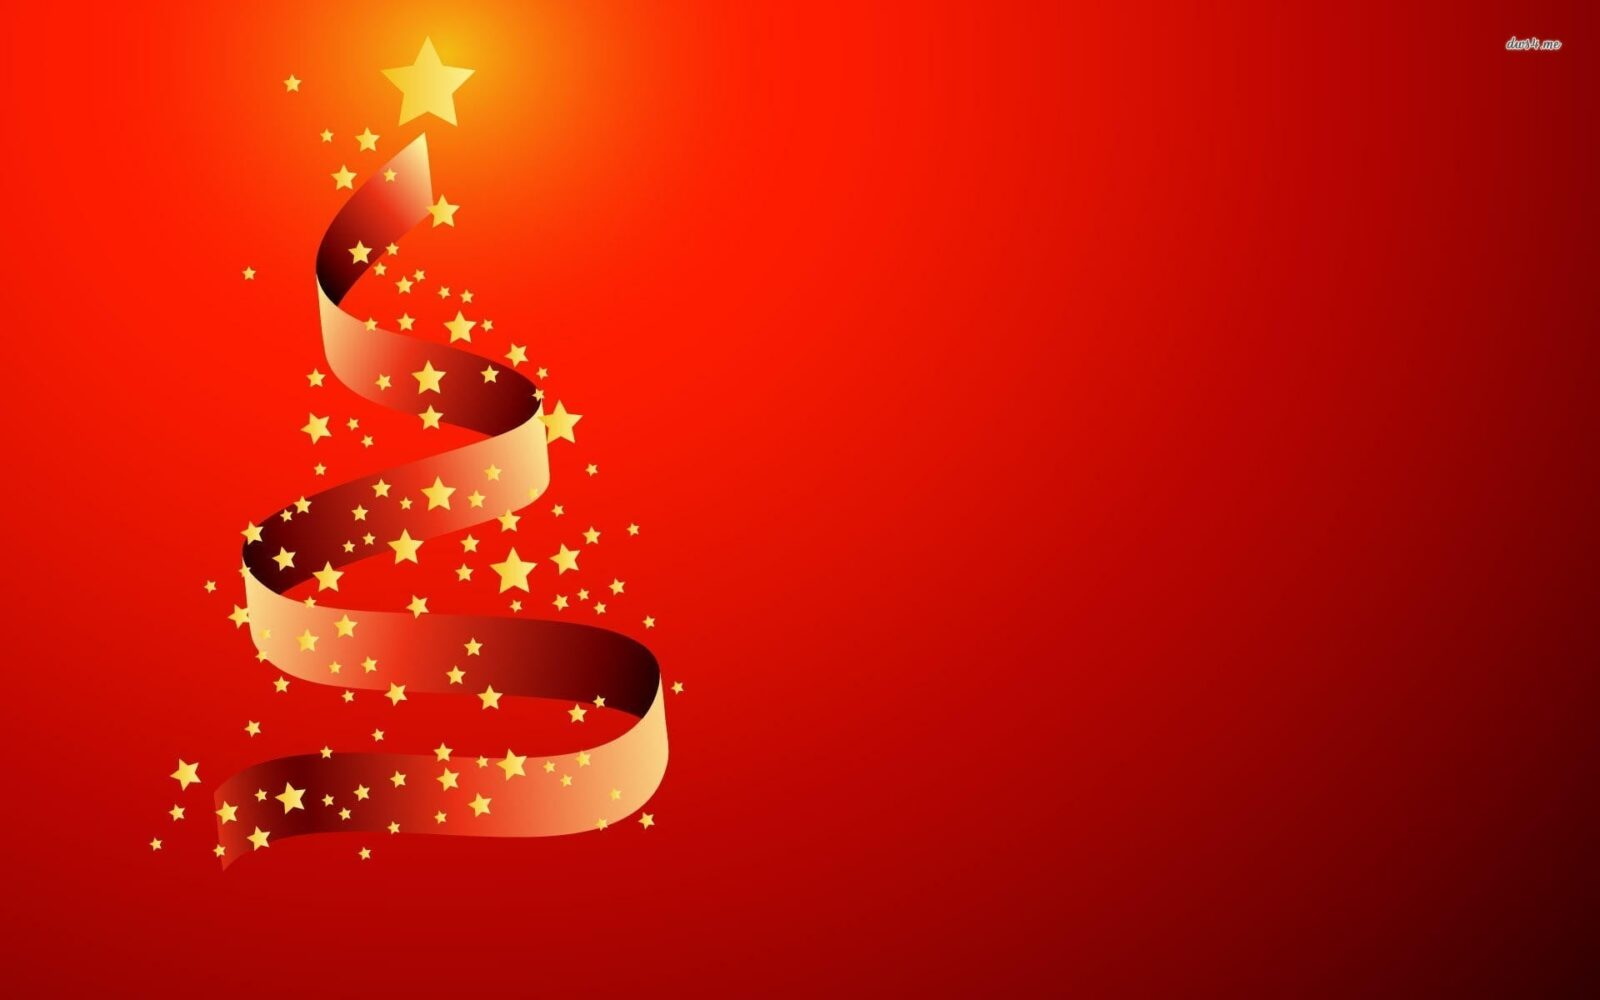 Hd Christmas Wallpaper.67 Christmas Wallpapers Hd Free Download